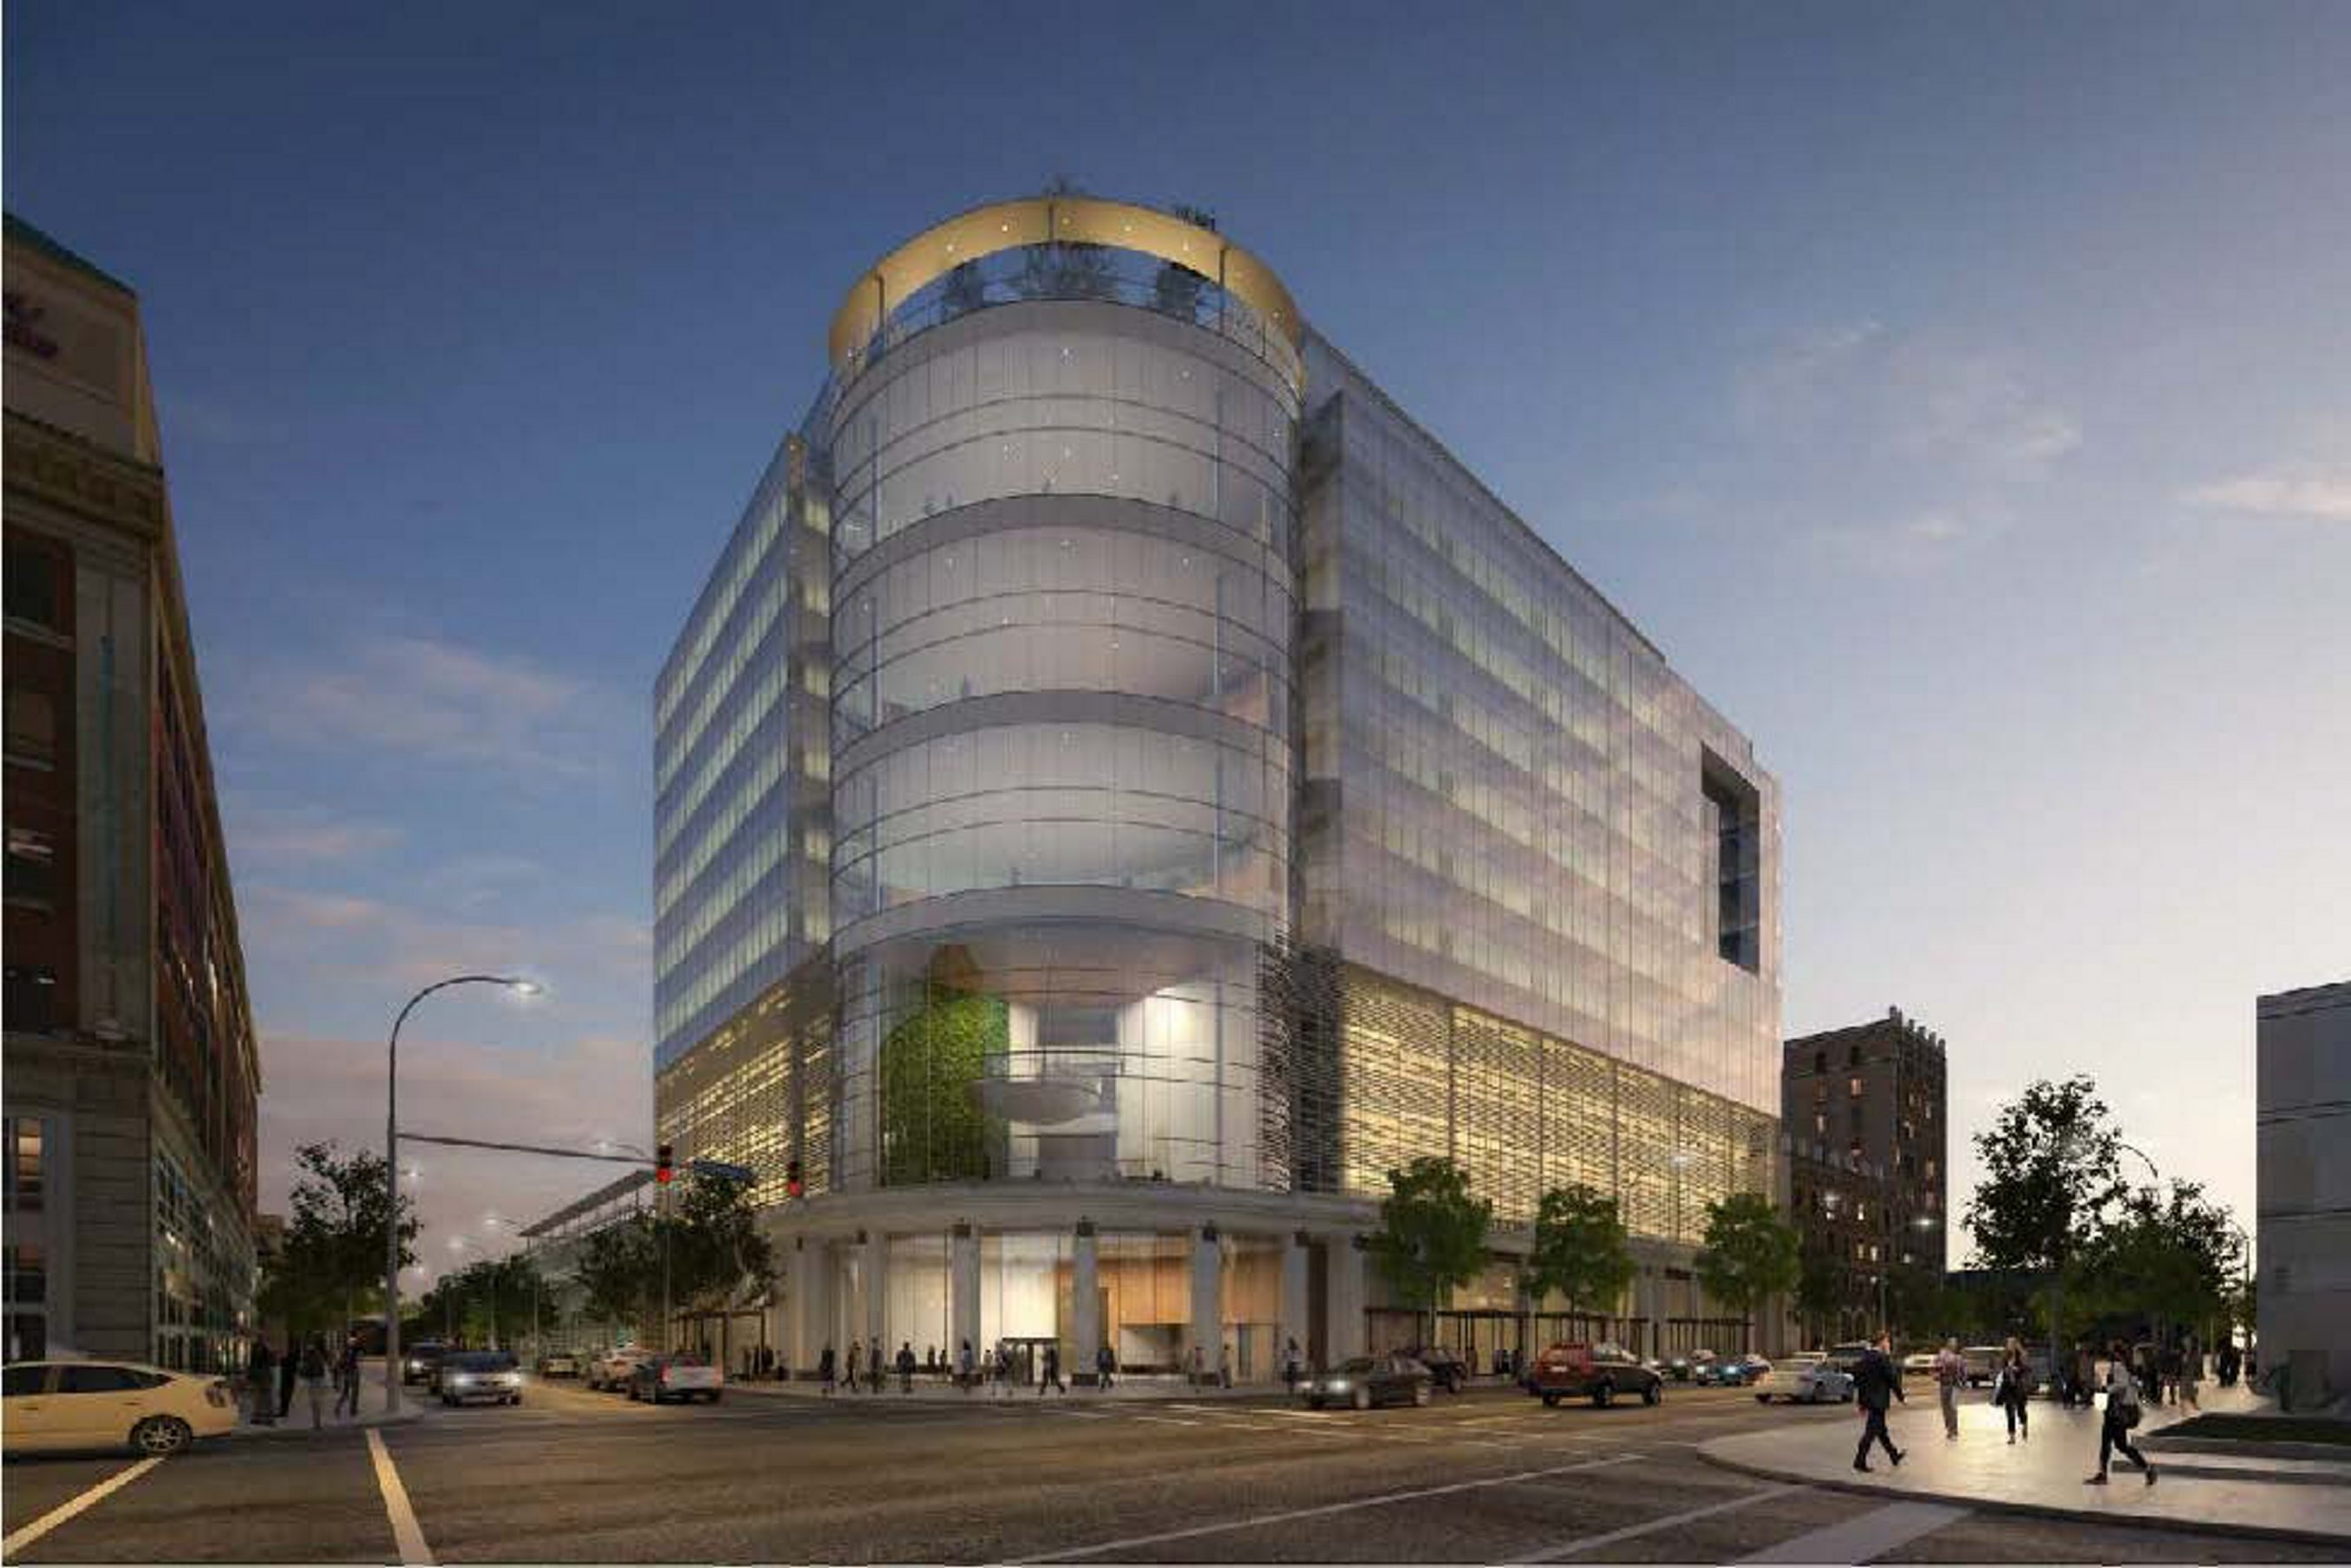 The proposed Uniland building at Delaware Avenue and Chippewa Street would not be built if Delaware North backs out of the lease.